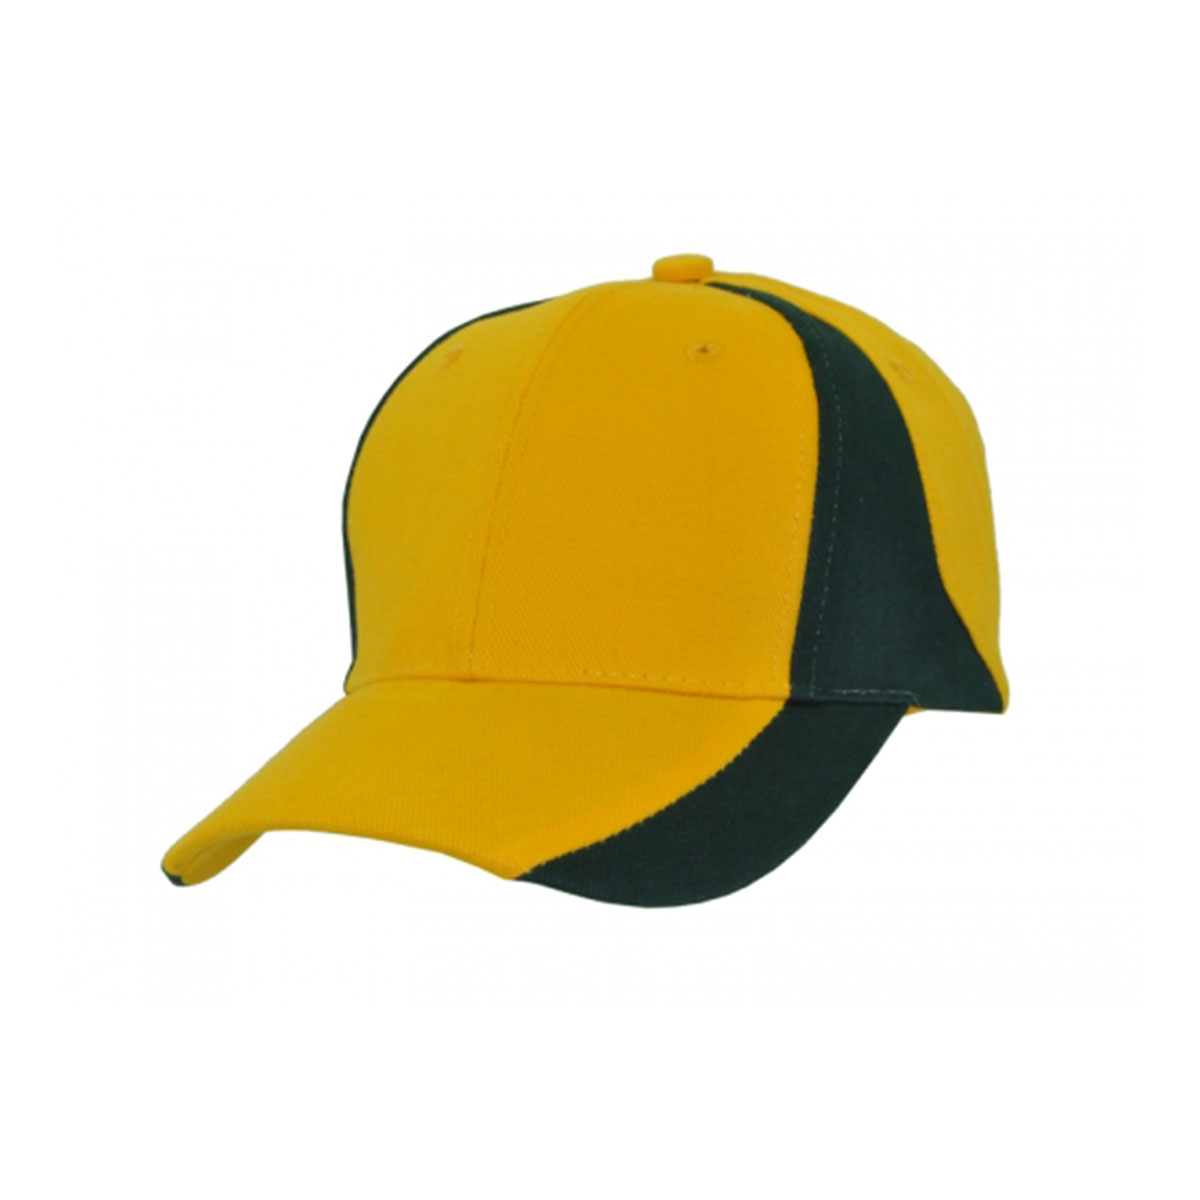 Vertek Cap-Aussie Gold / Bottle